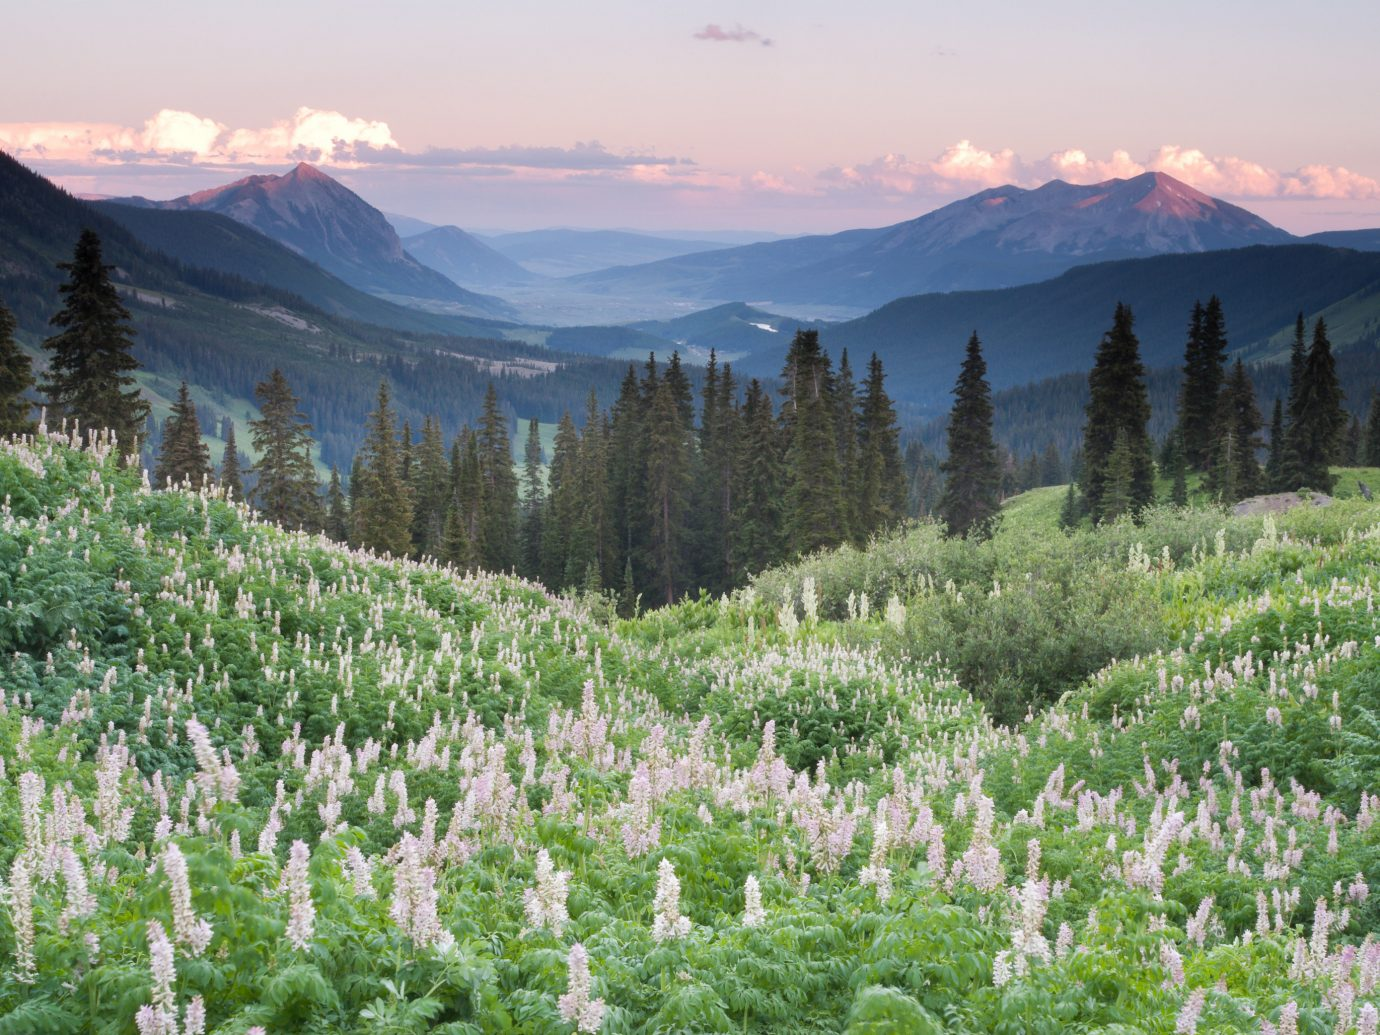 Trip Ideas sky mountain outdoor tree mountainous landforms wilderness mountain range geographical feature flower ecosystem plant field background meadow valley Nature wildflower landscape alps plateau ridge Lake pasture distance surrounded lush highland